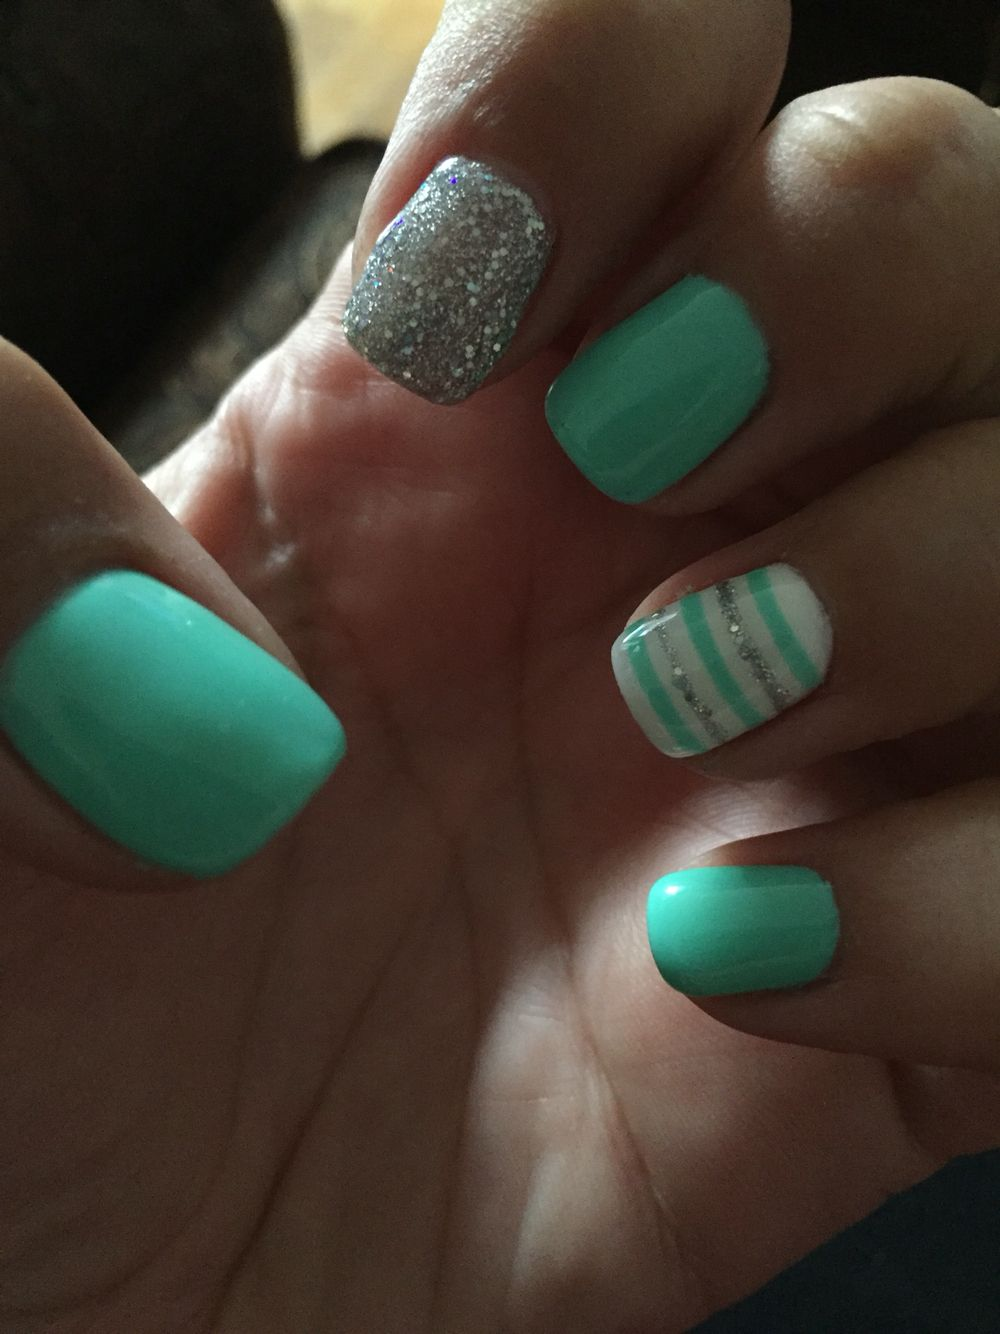 loving teal and silver nails